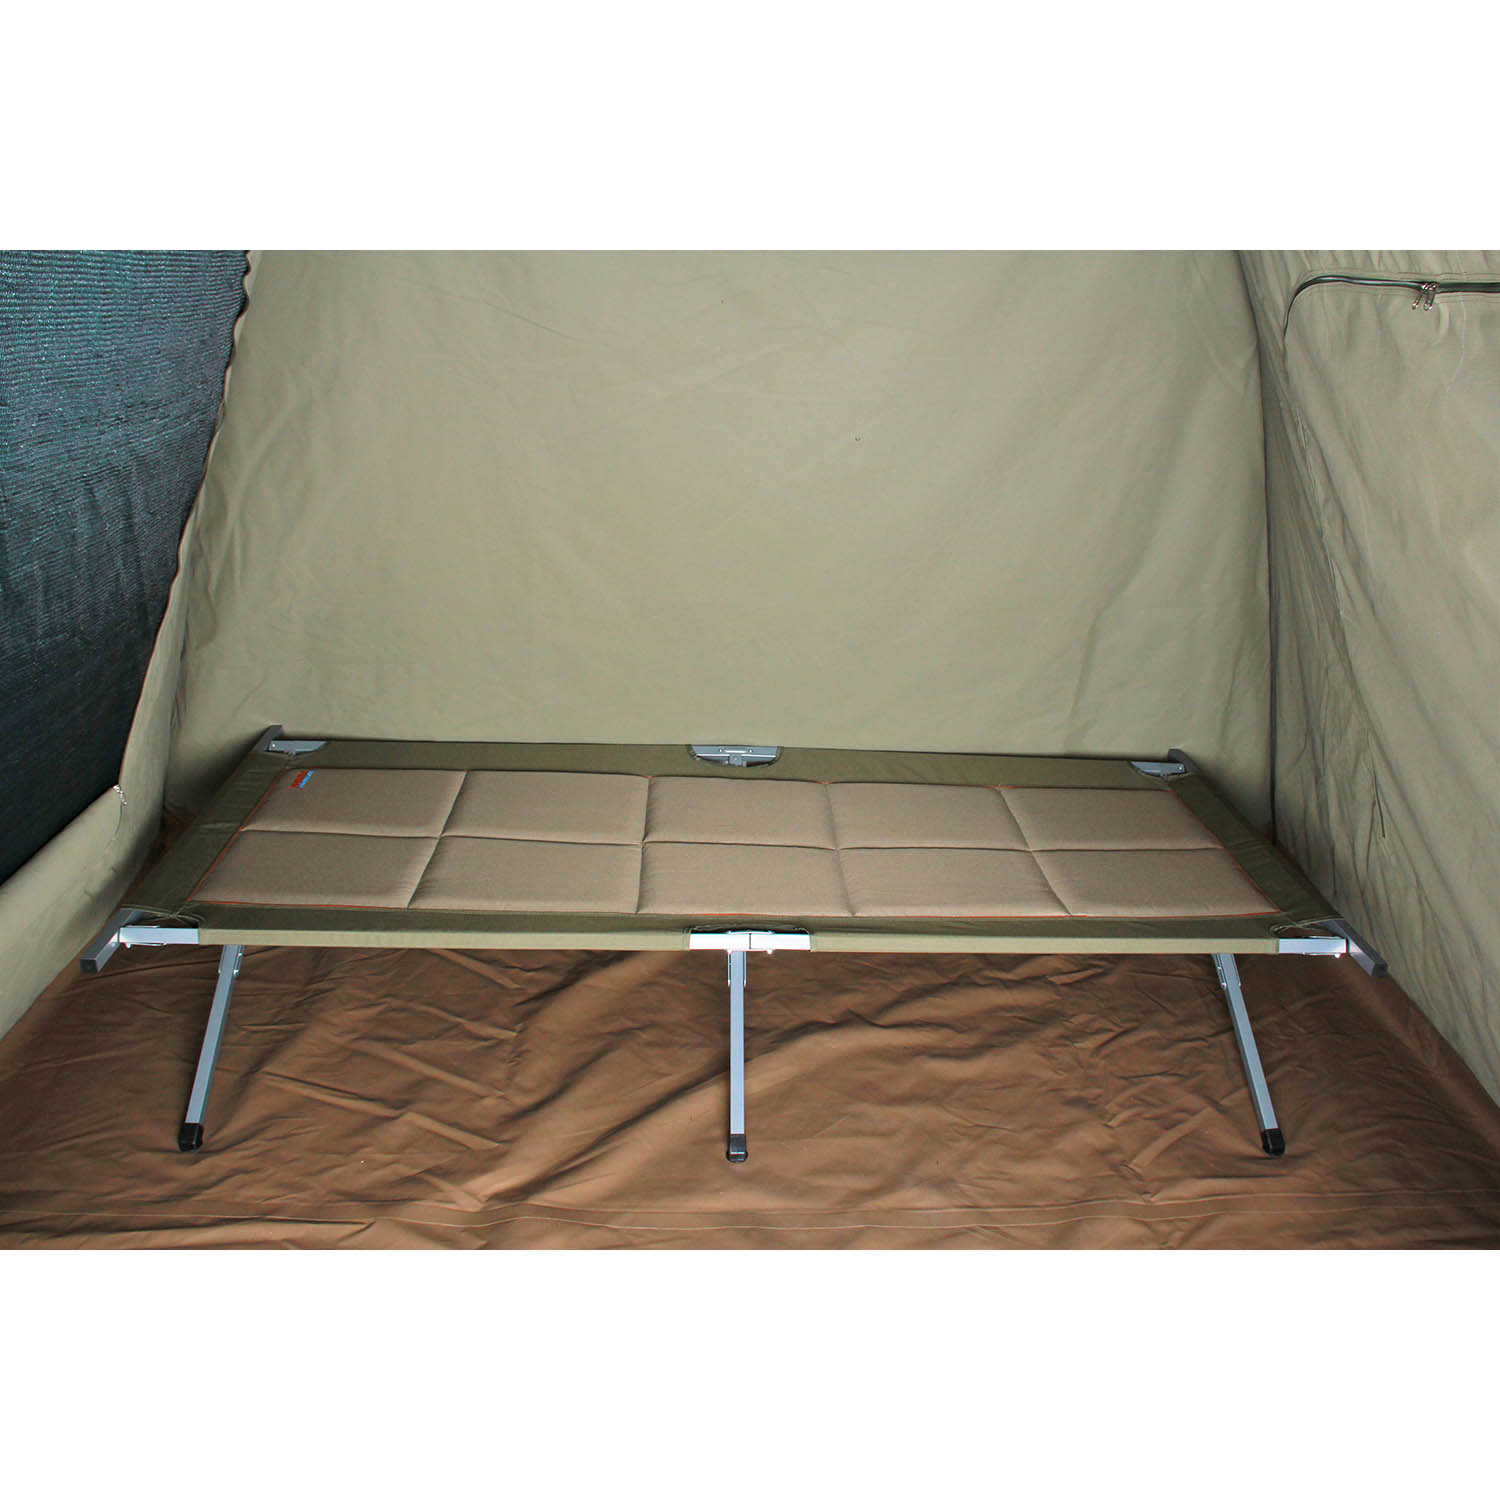 Sierra Oversized Camp Stretcher 187 Bushtec Adventure